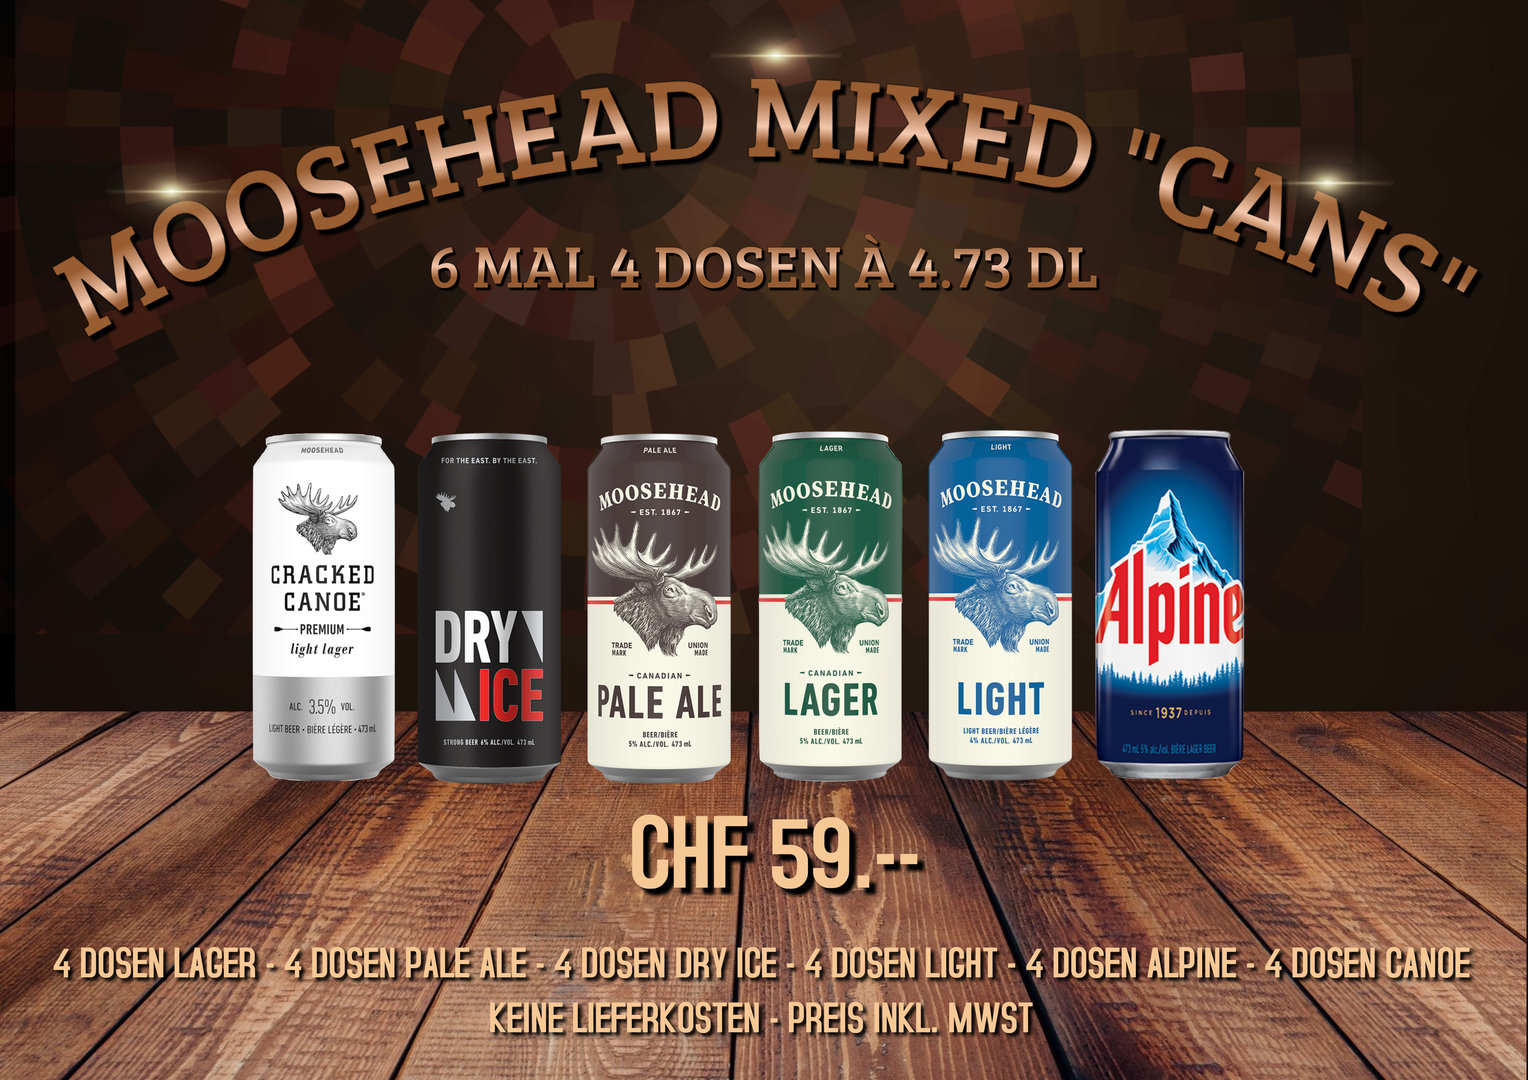 "Moosehead Mixed ""Cans"""